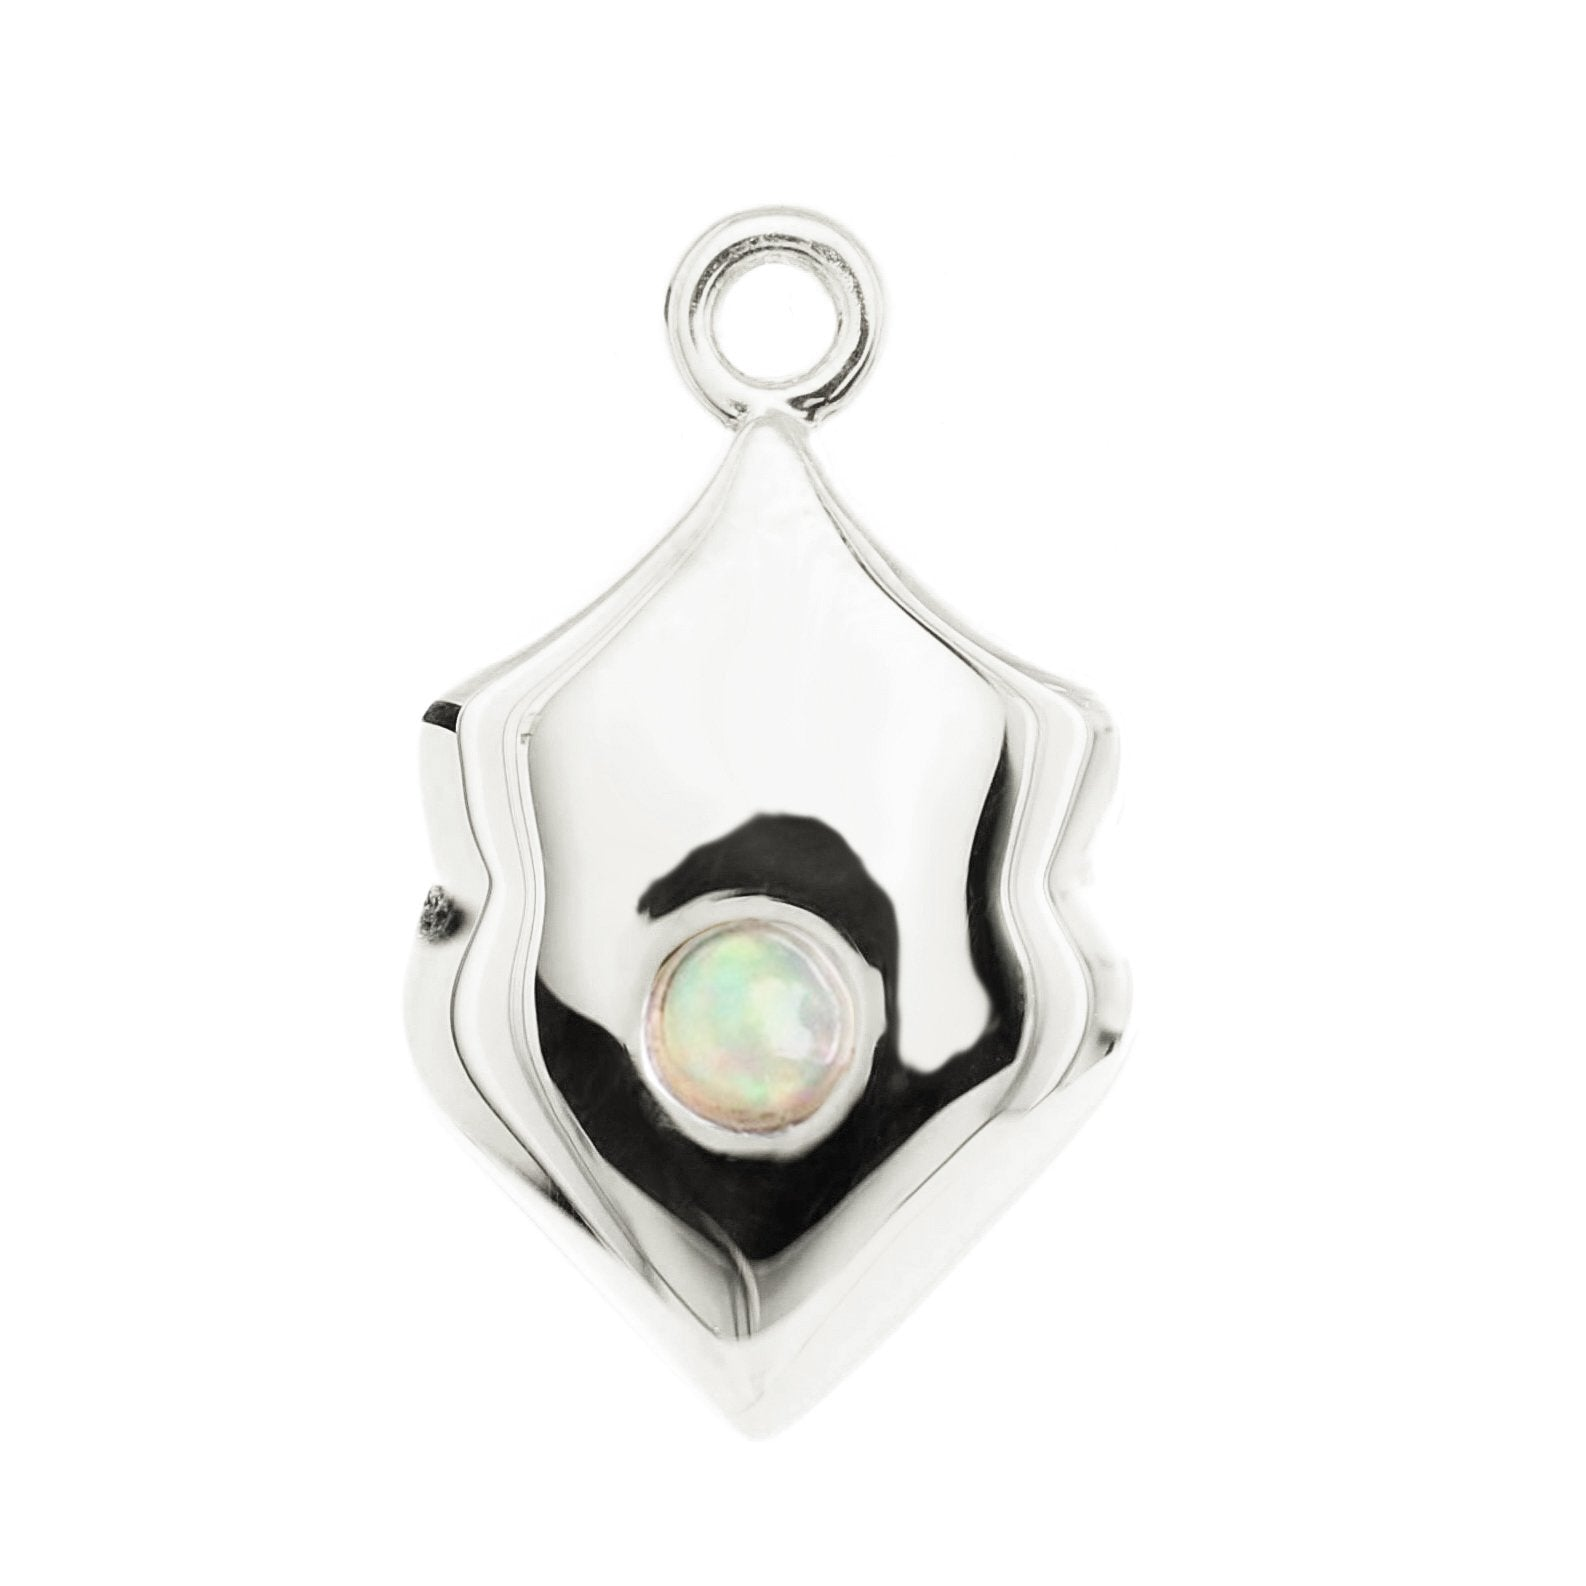 LEGACY OCTOBER BIRTHSTONE SHIELD ICON - OPAL & SILVER - SO PRETTY CARA COTTER